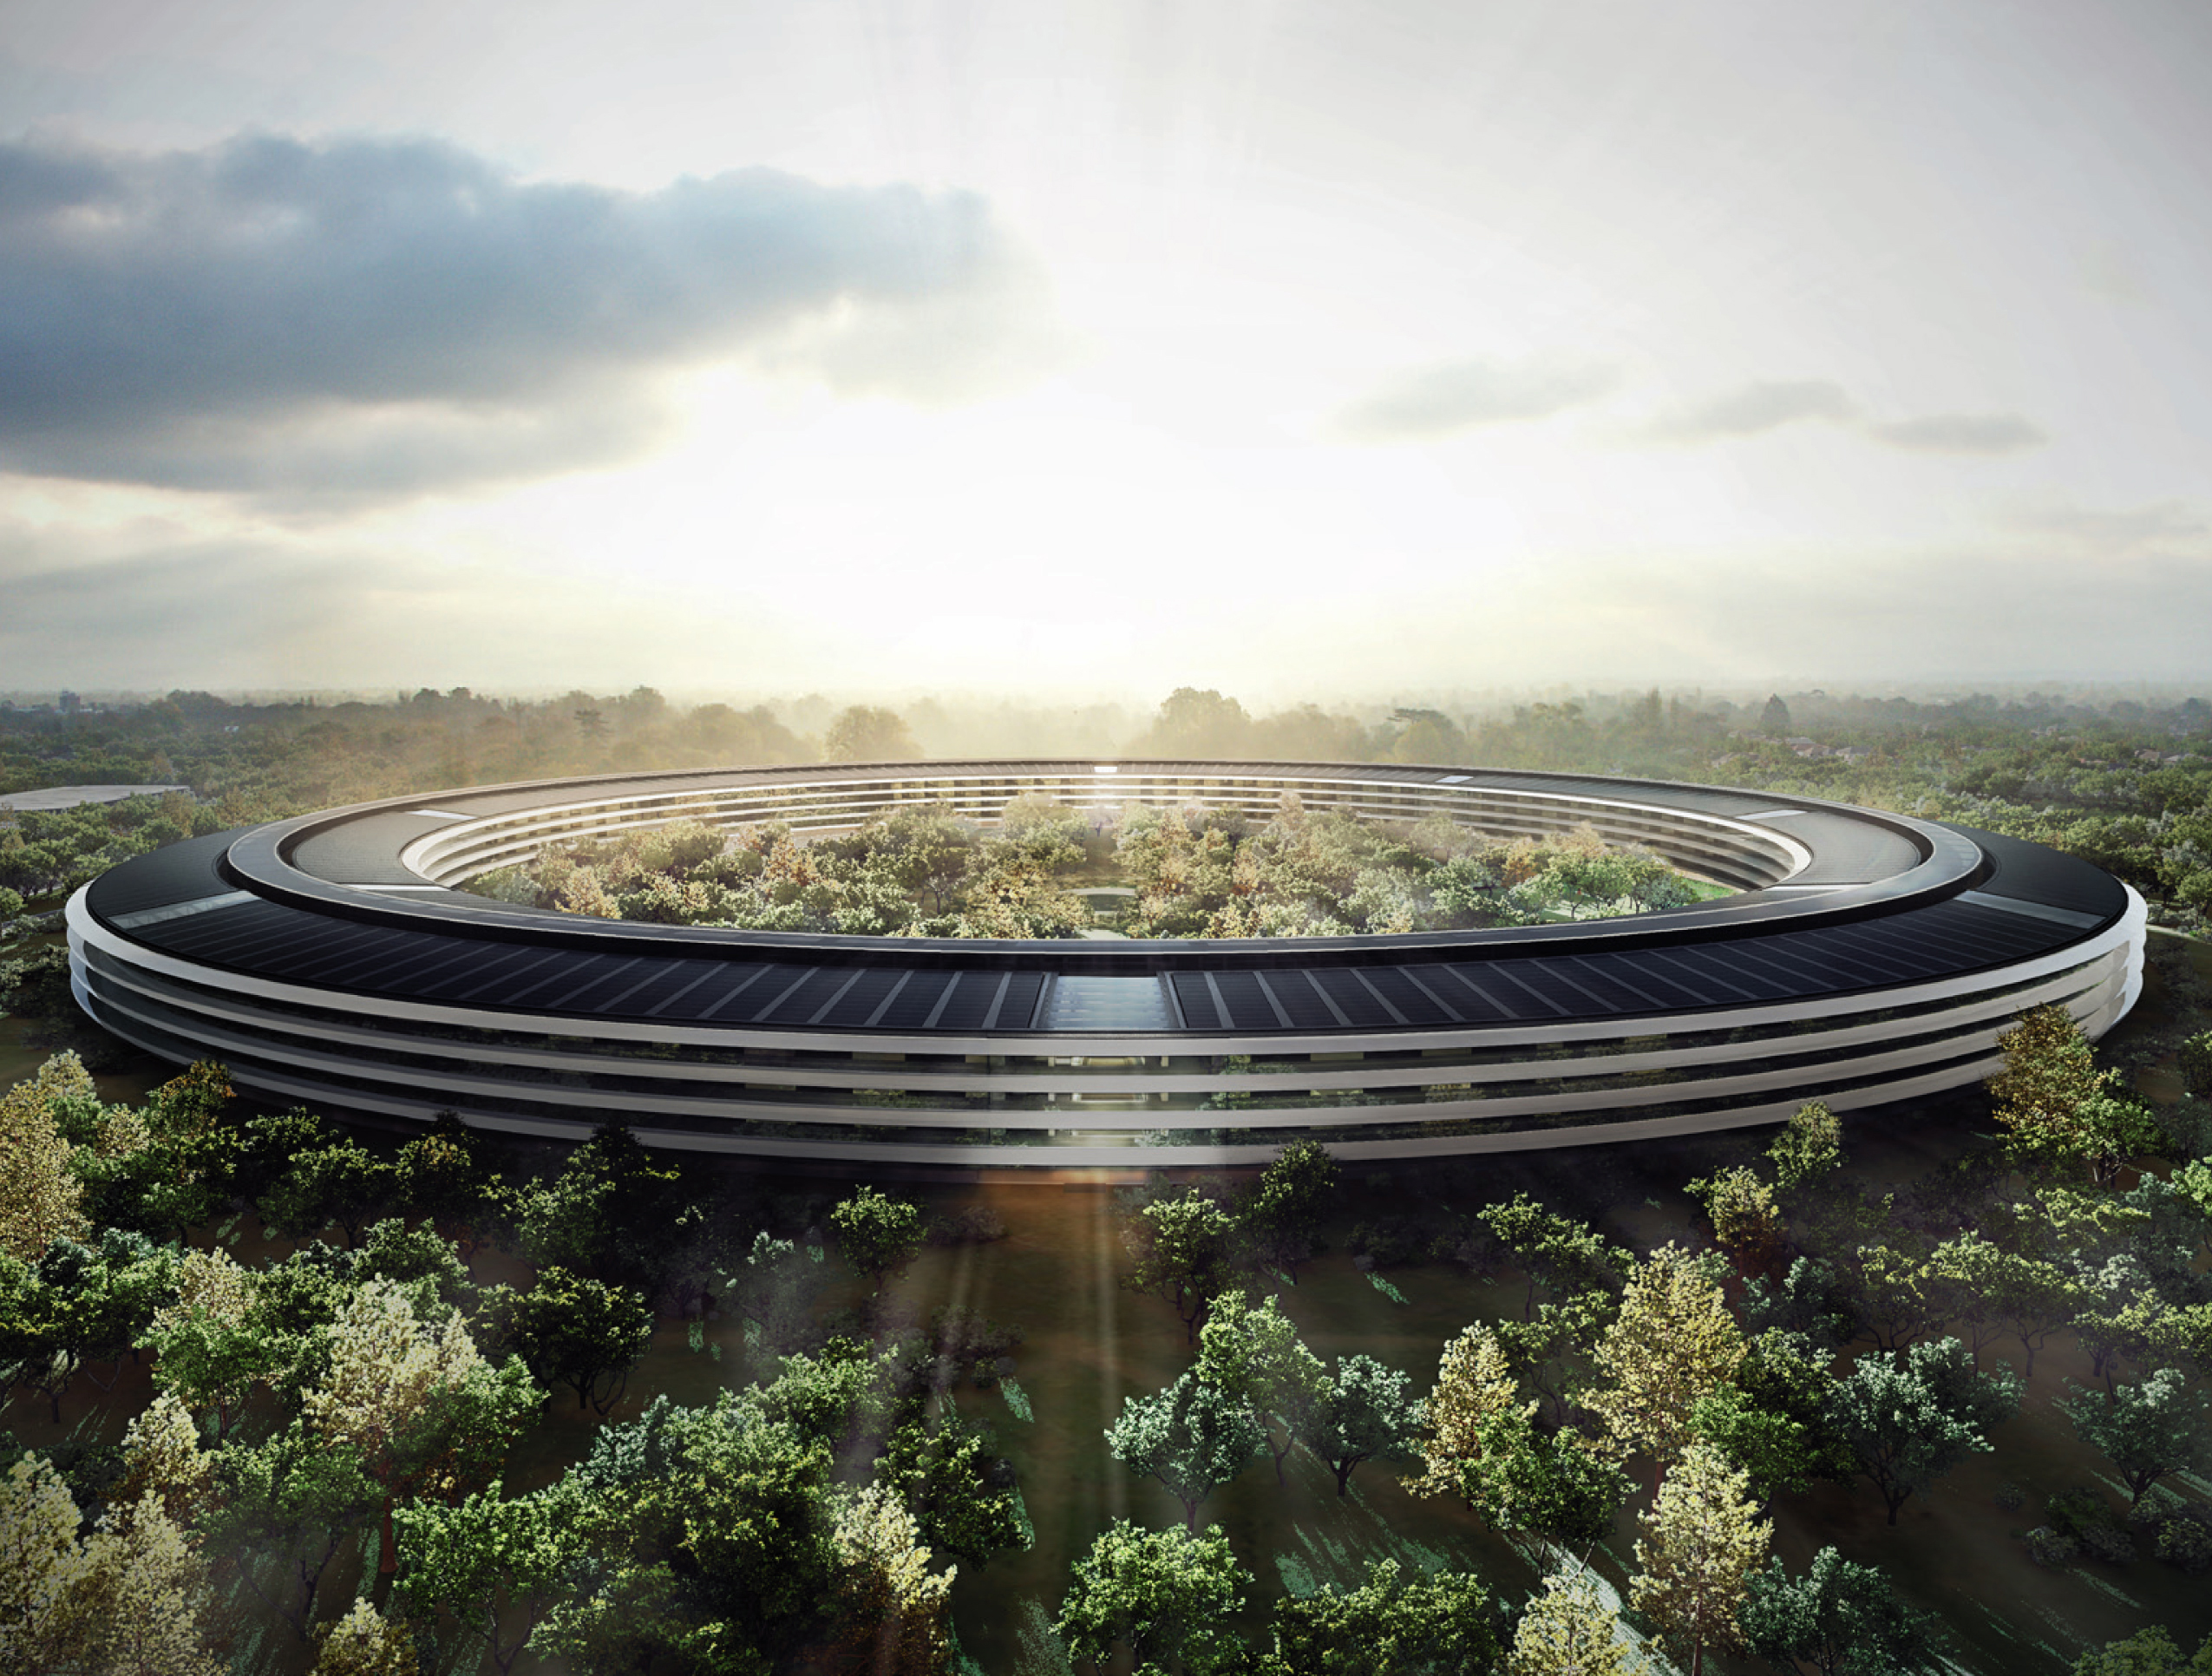 Concept art of the main building of Apple's new Cupertino campus.